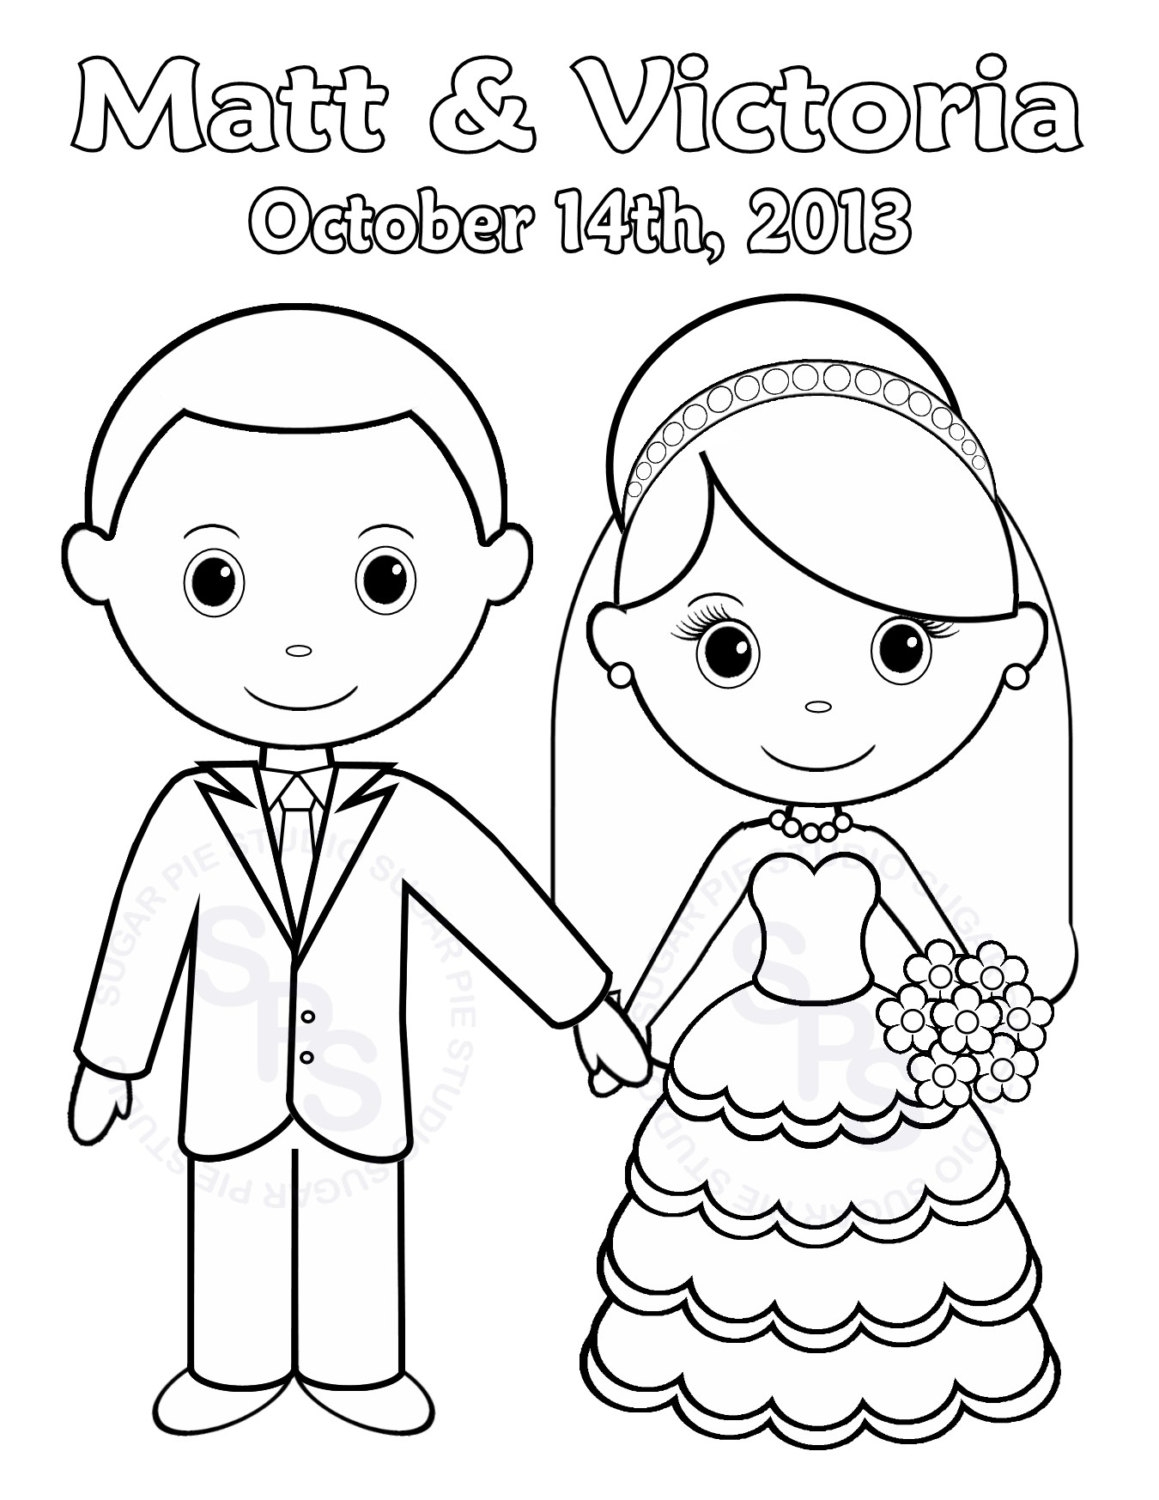 Wedding cartoon drawing at free for for Coloring pages wedding